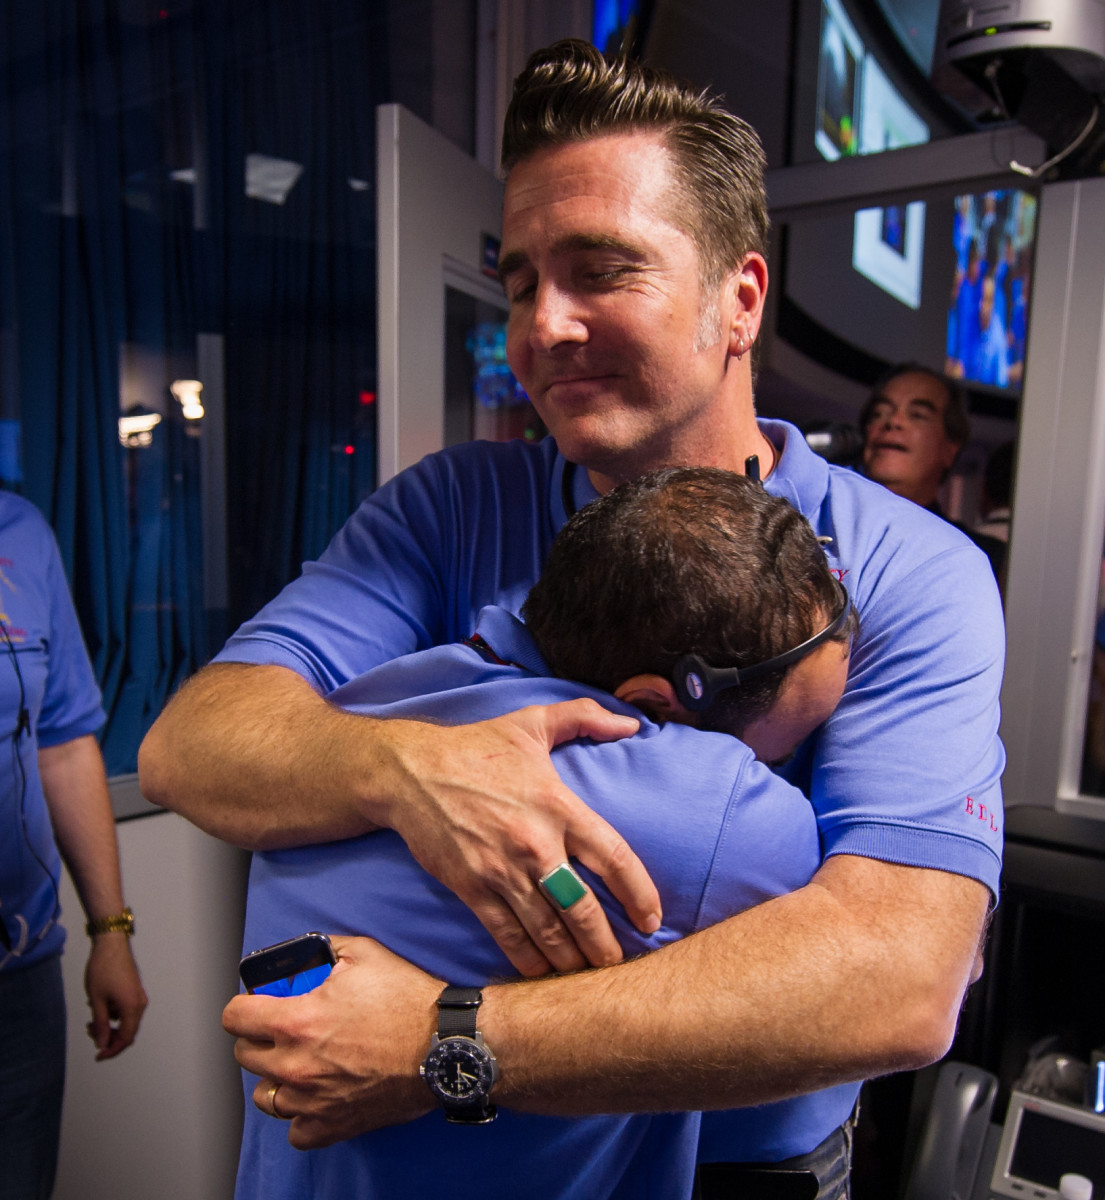 NASA employee Adam Steltzner shares a hug with a hard-working co-worker as the first images from the Curiosity rover roll in.  They worked years for this success.